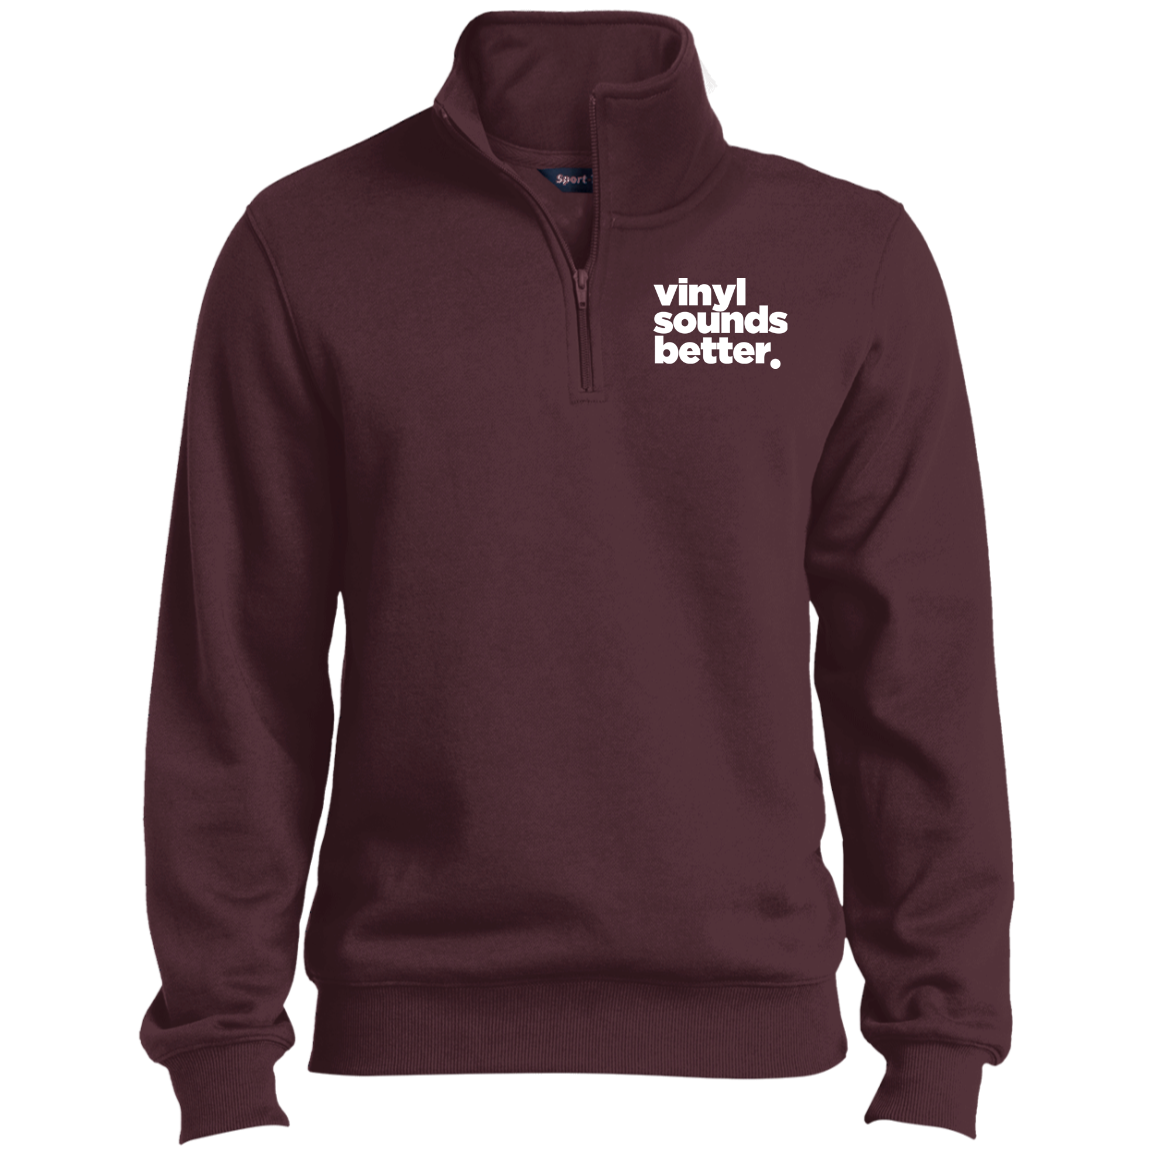 Vinyl Sounds Better Sport-Tek 1/4 Zip Sweatshirt